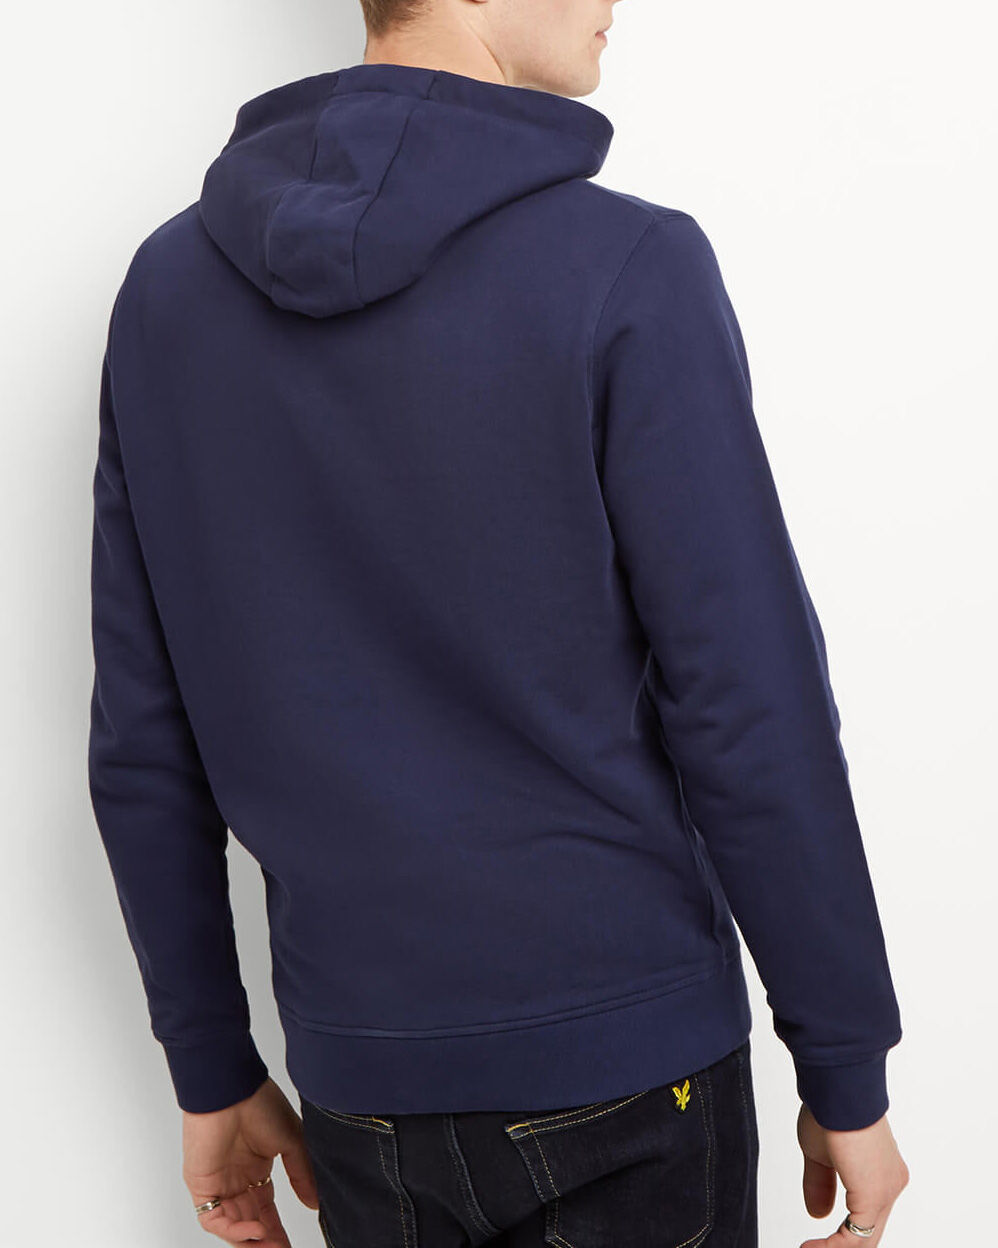 Lyle-and-Scott-Mens-Pullover-Hoodie-Cotton thumbnail 39